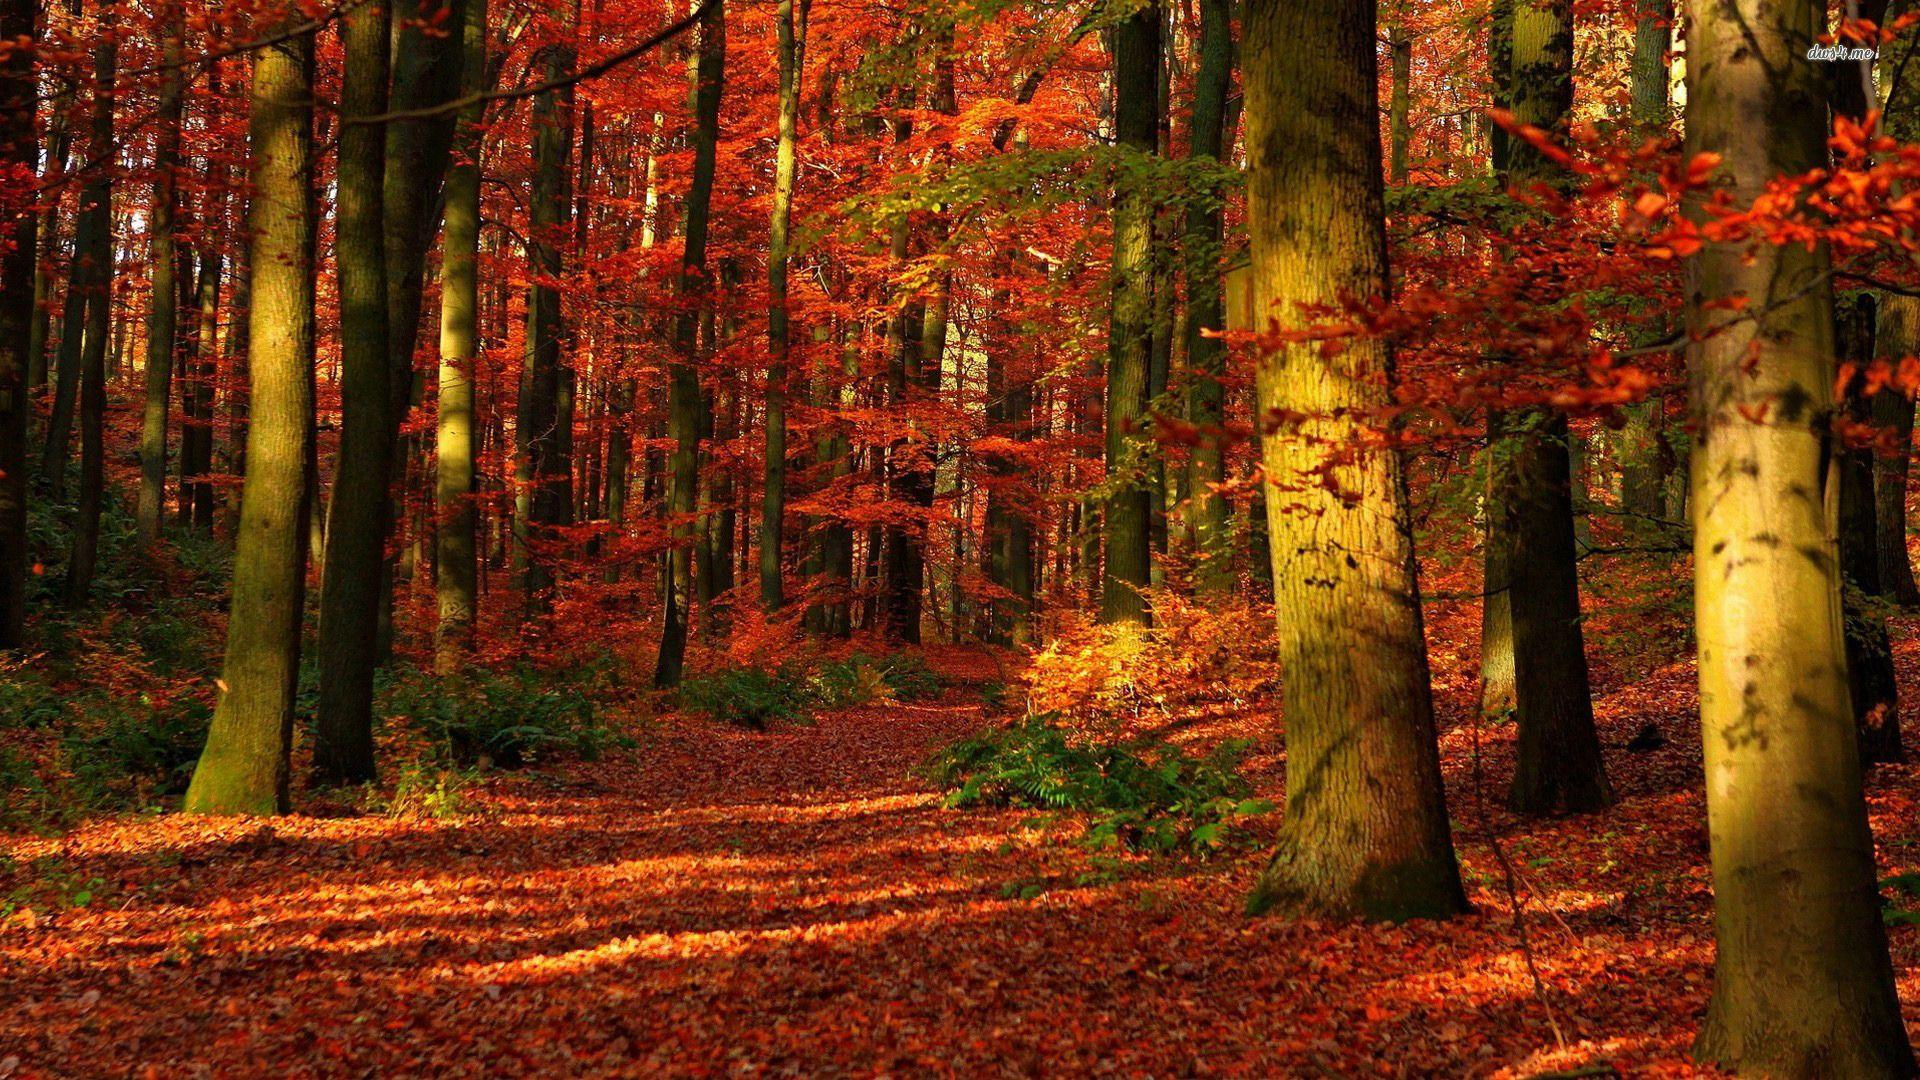 Trees Beautiful Nature Autumn Red Forest Wallpapers For Iphone